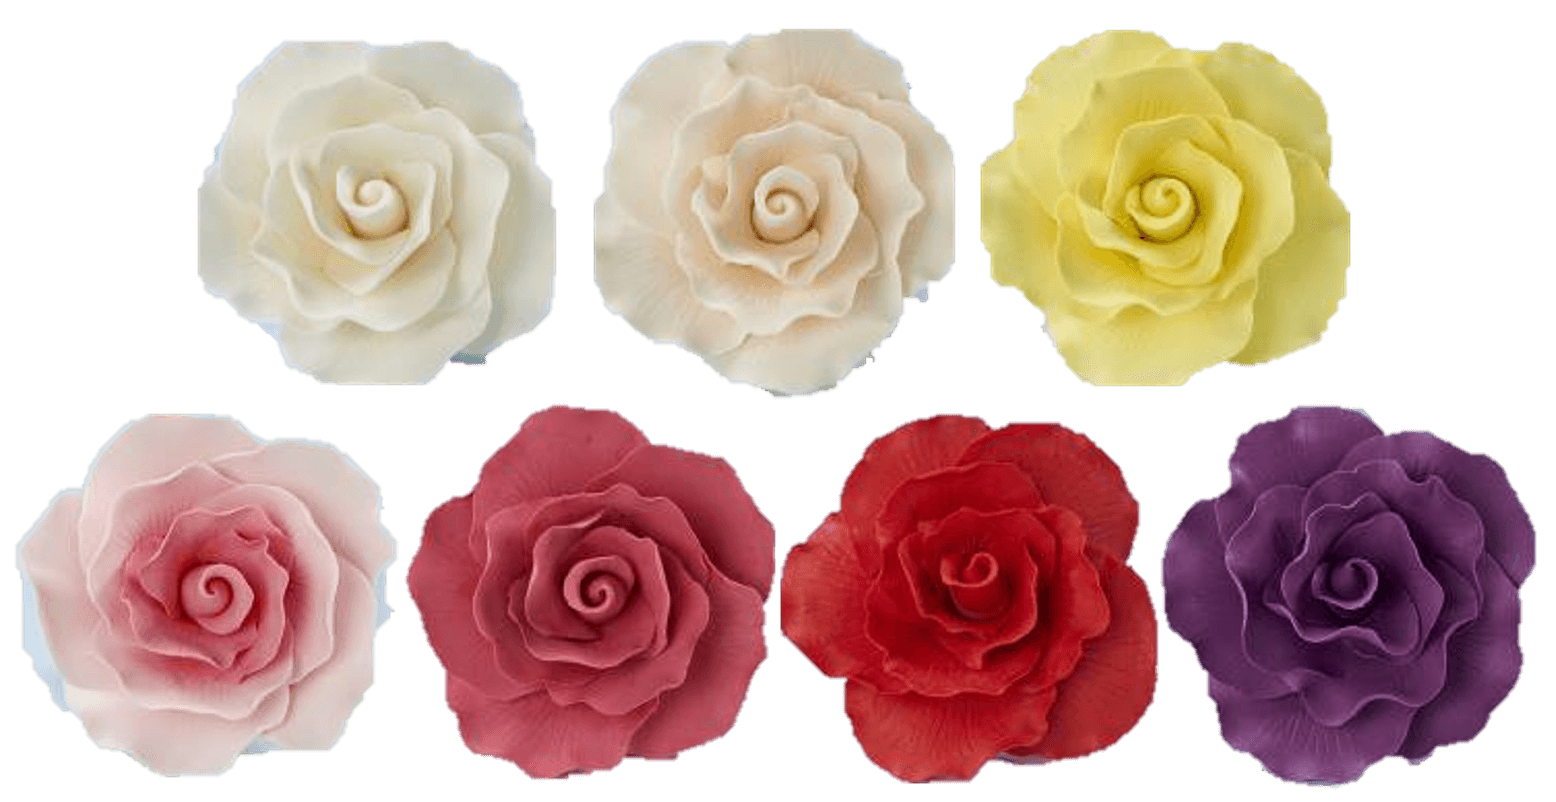 Rose heads flower icing cake decorations - Tamworth West Midlands